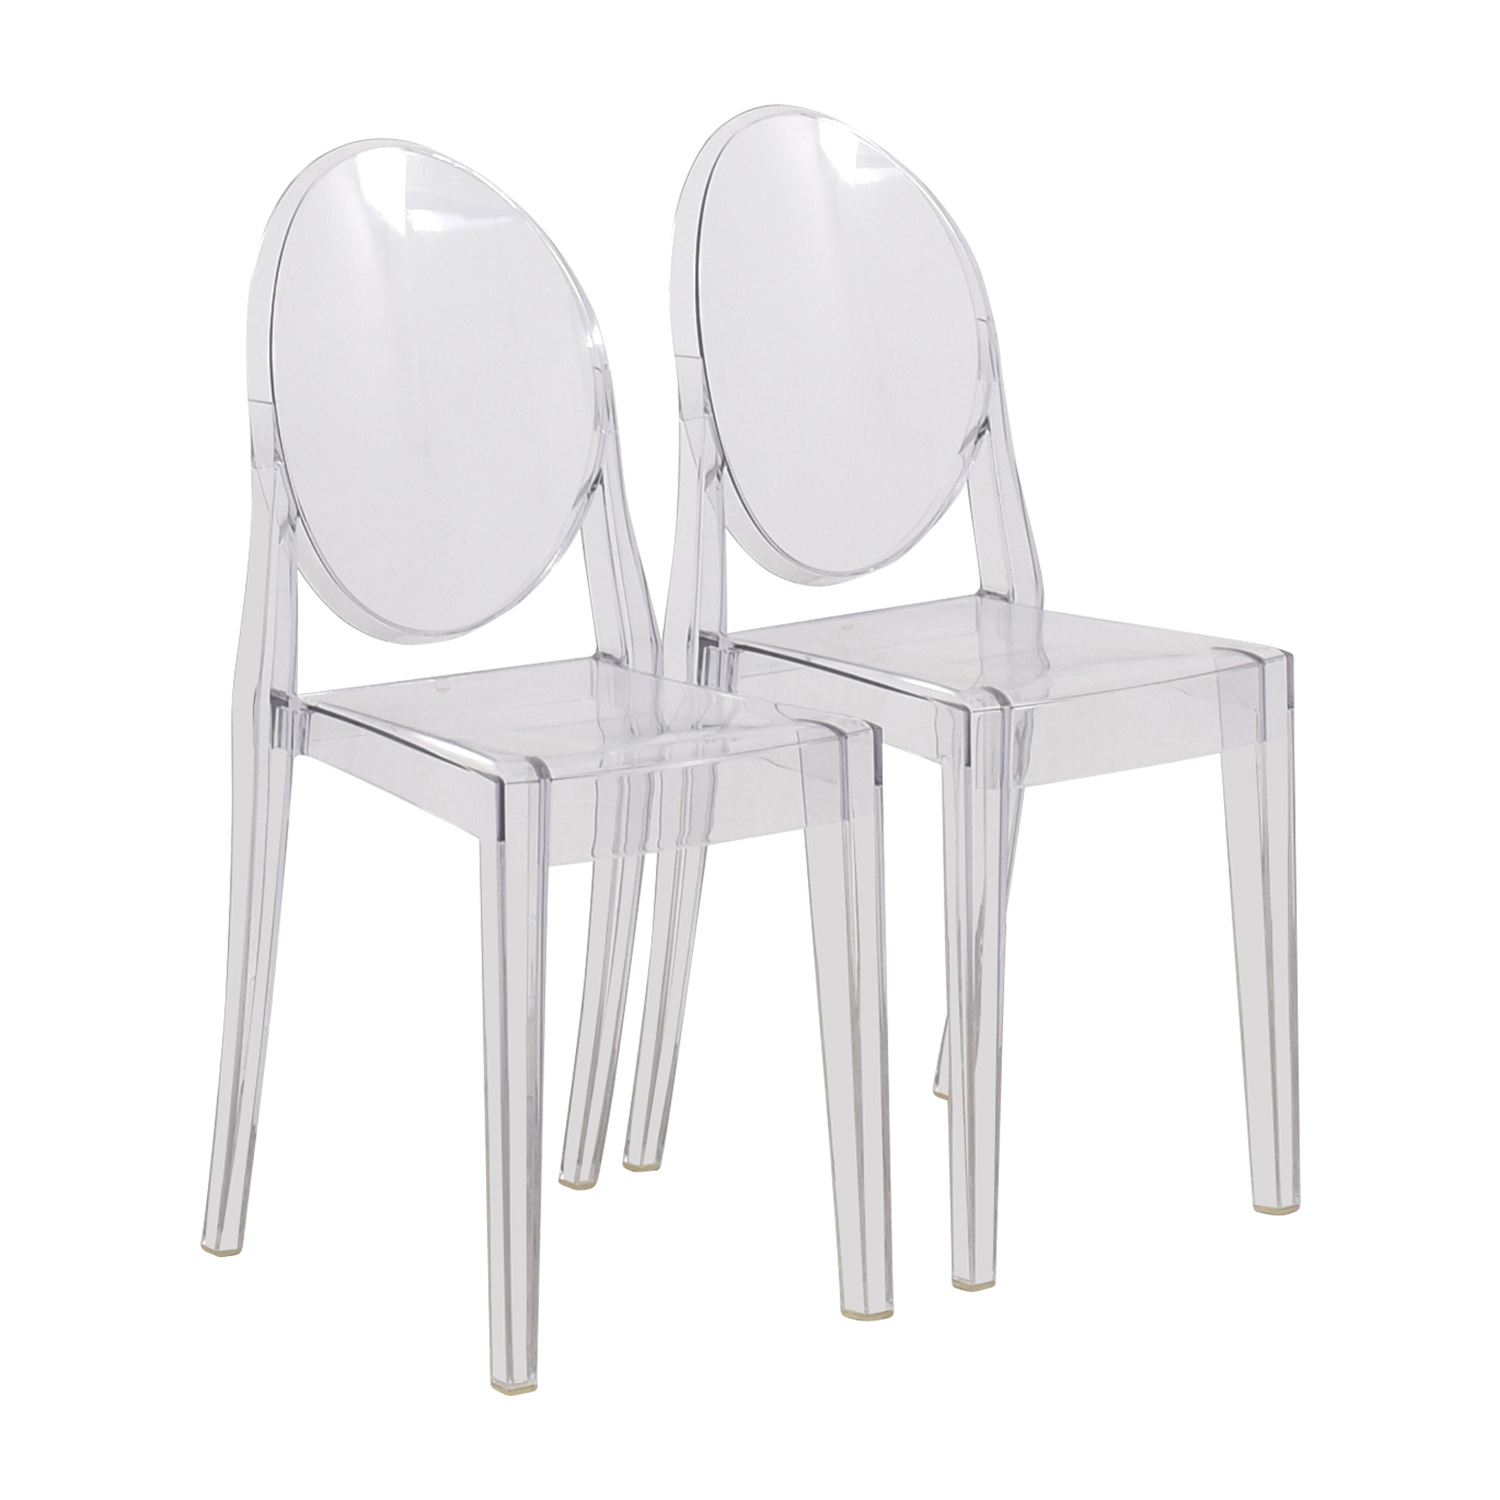 75 off kartell kartell starck victoria ghost chairs chairs. Black Bedroom Furniture Sets. Home Design Ideas